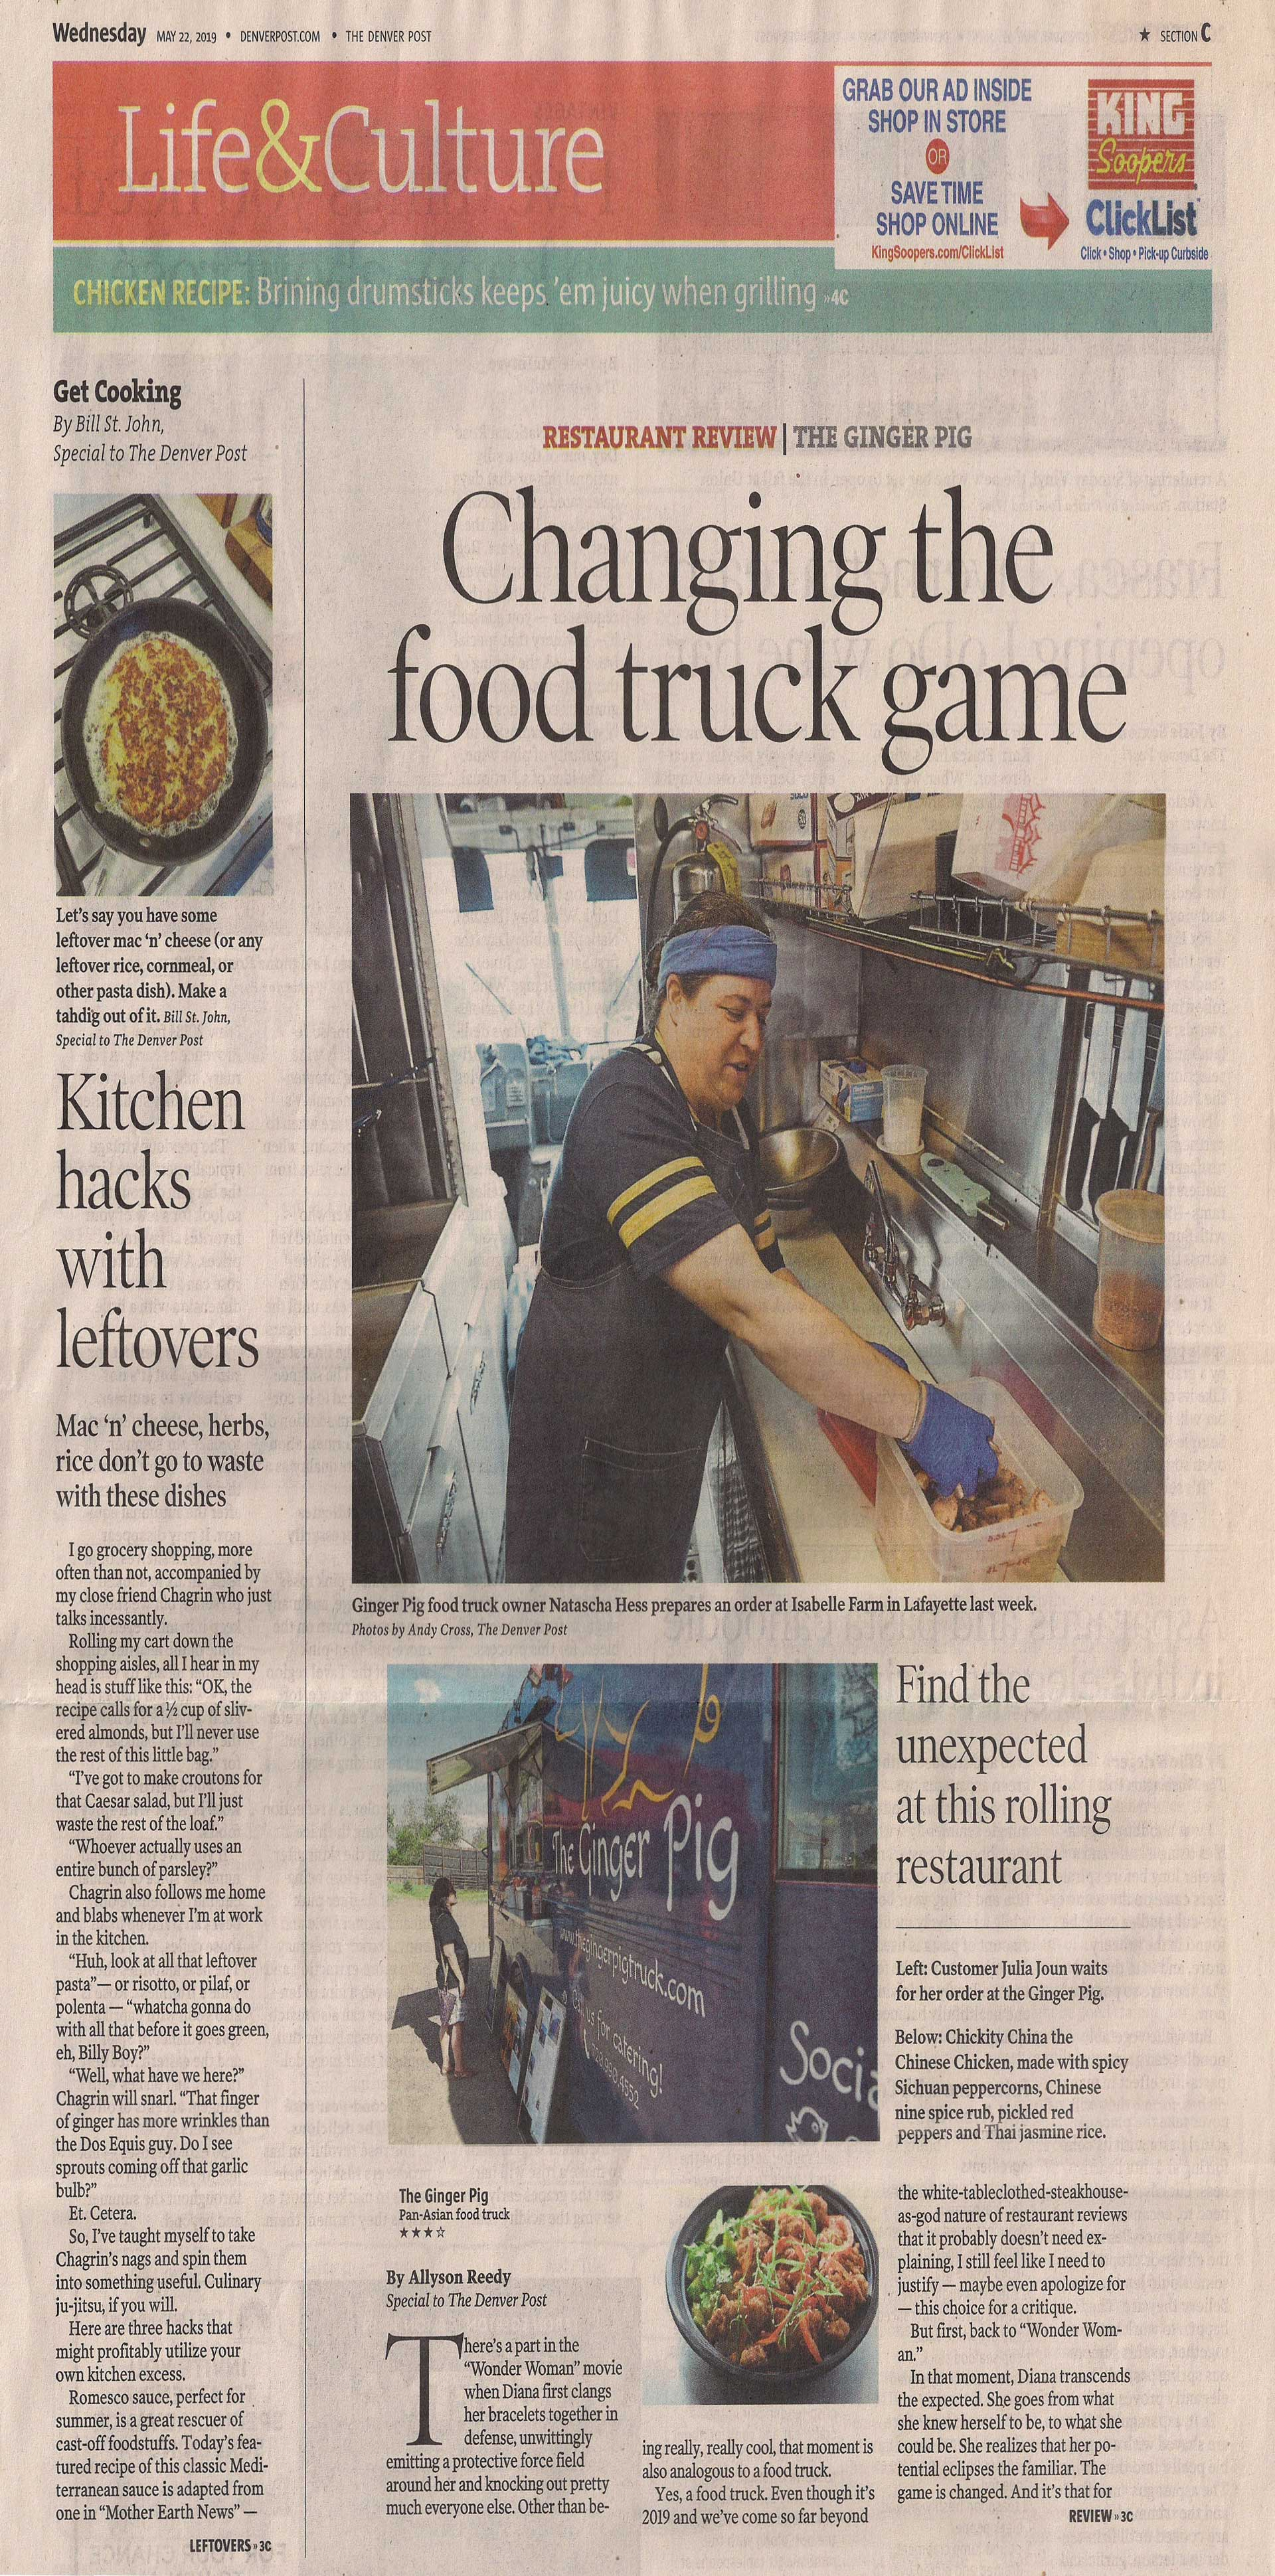 the-denver-post-the-know-food-review-ginger-pig-food-truck-pg-2 (2).jpg